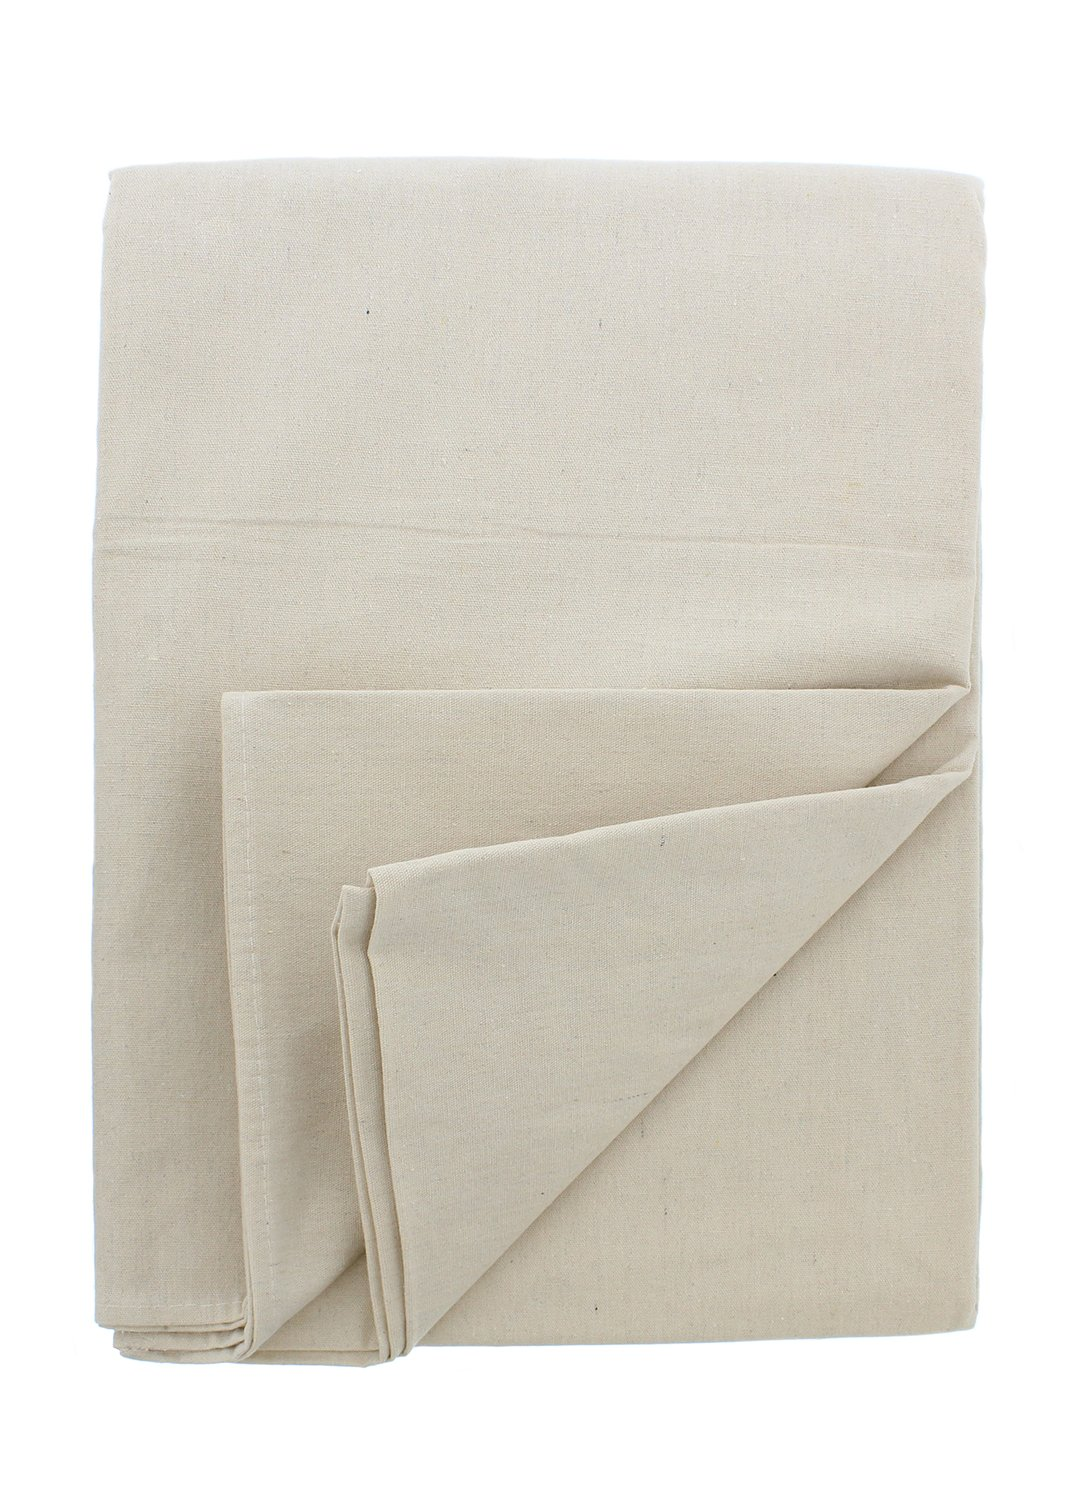 White Painters Cotton Canvas Drop Cloth